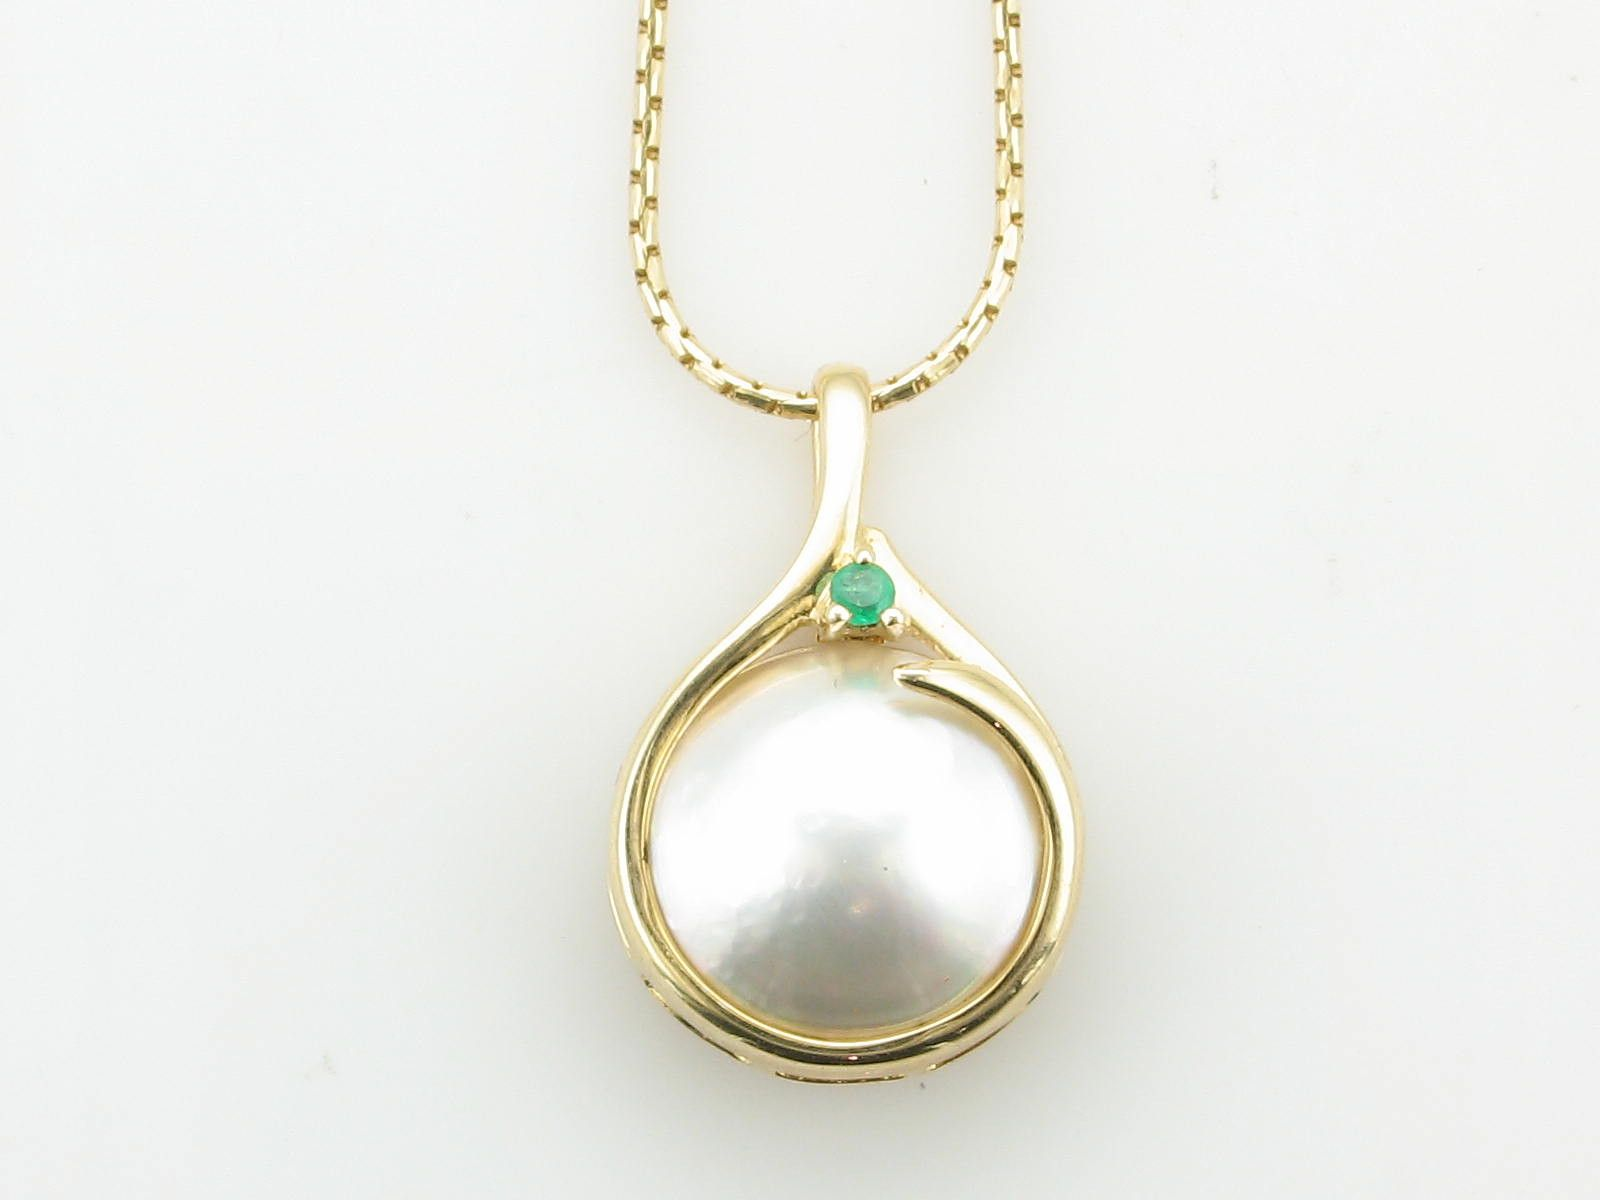 Pearl and emerald necklace from uniq jewelry gallery jewelry